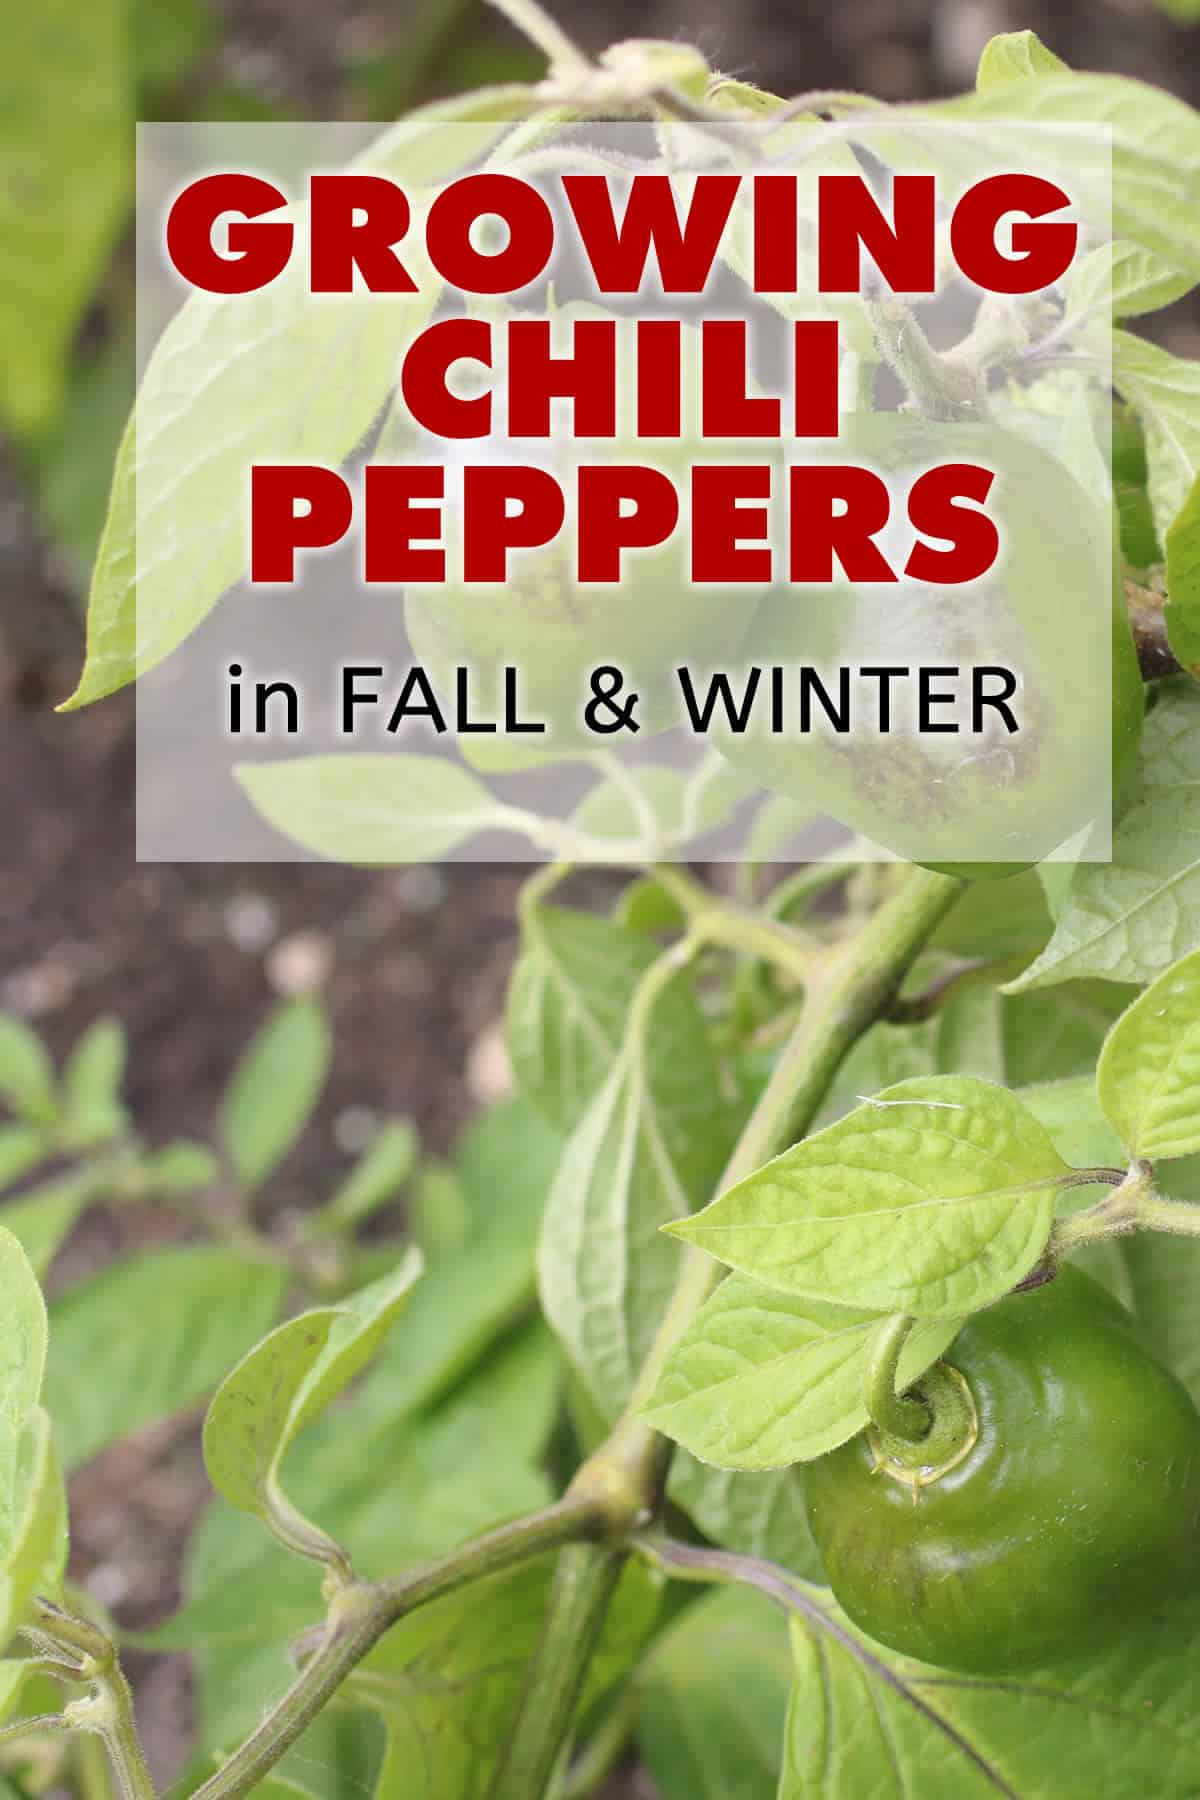 Growing Chili Peppers or Other Gardening in the Fall and Winter